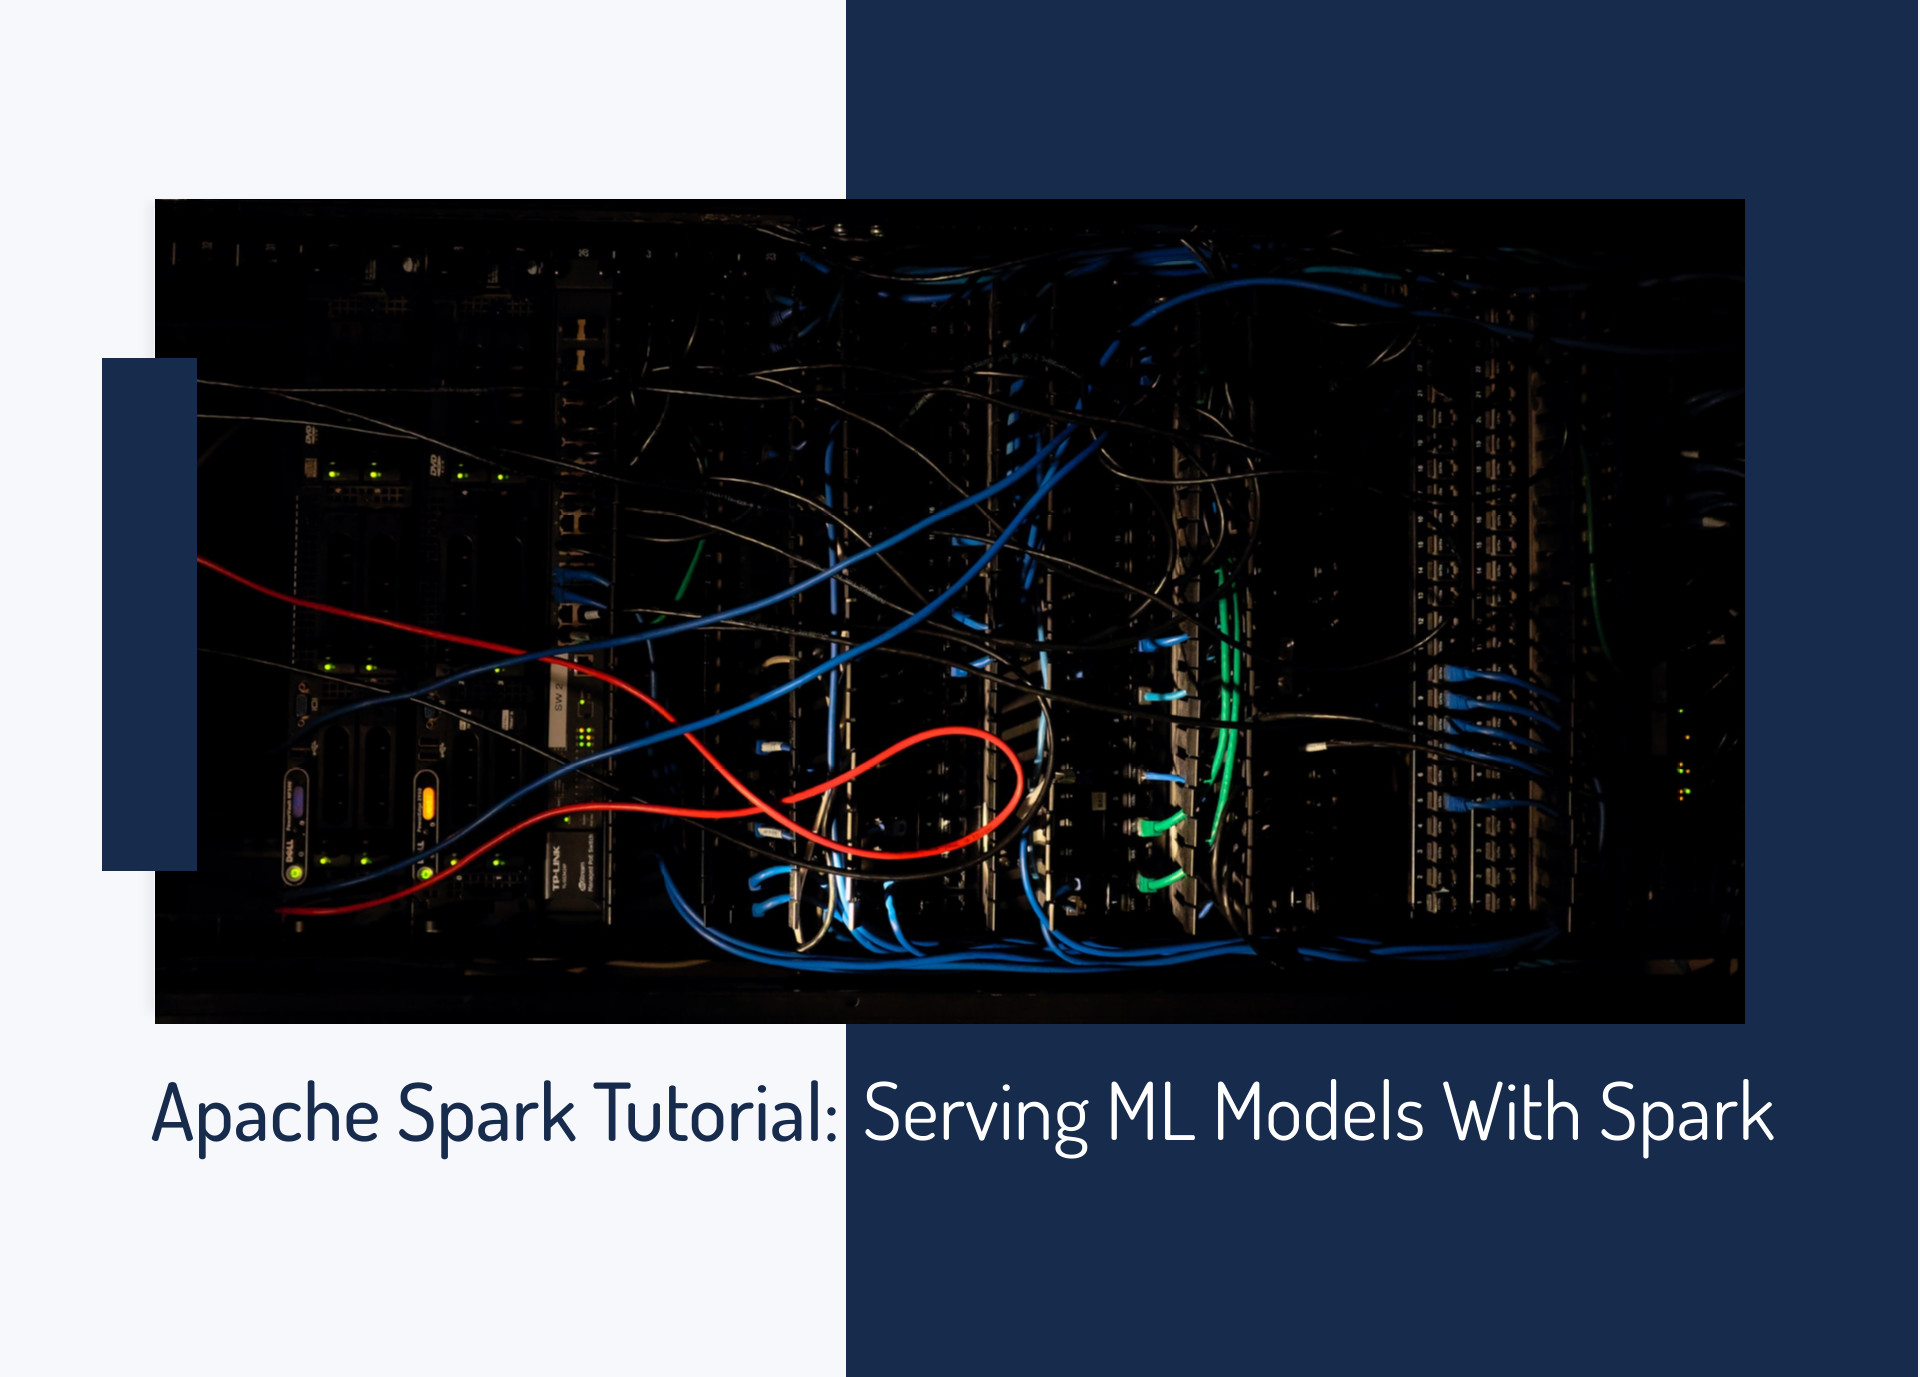 Apache Spark Tutorial: Get Started With Serving ML Models With Spark